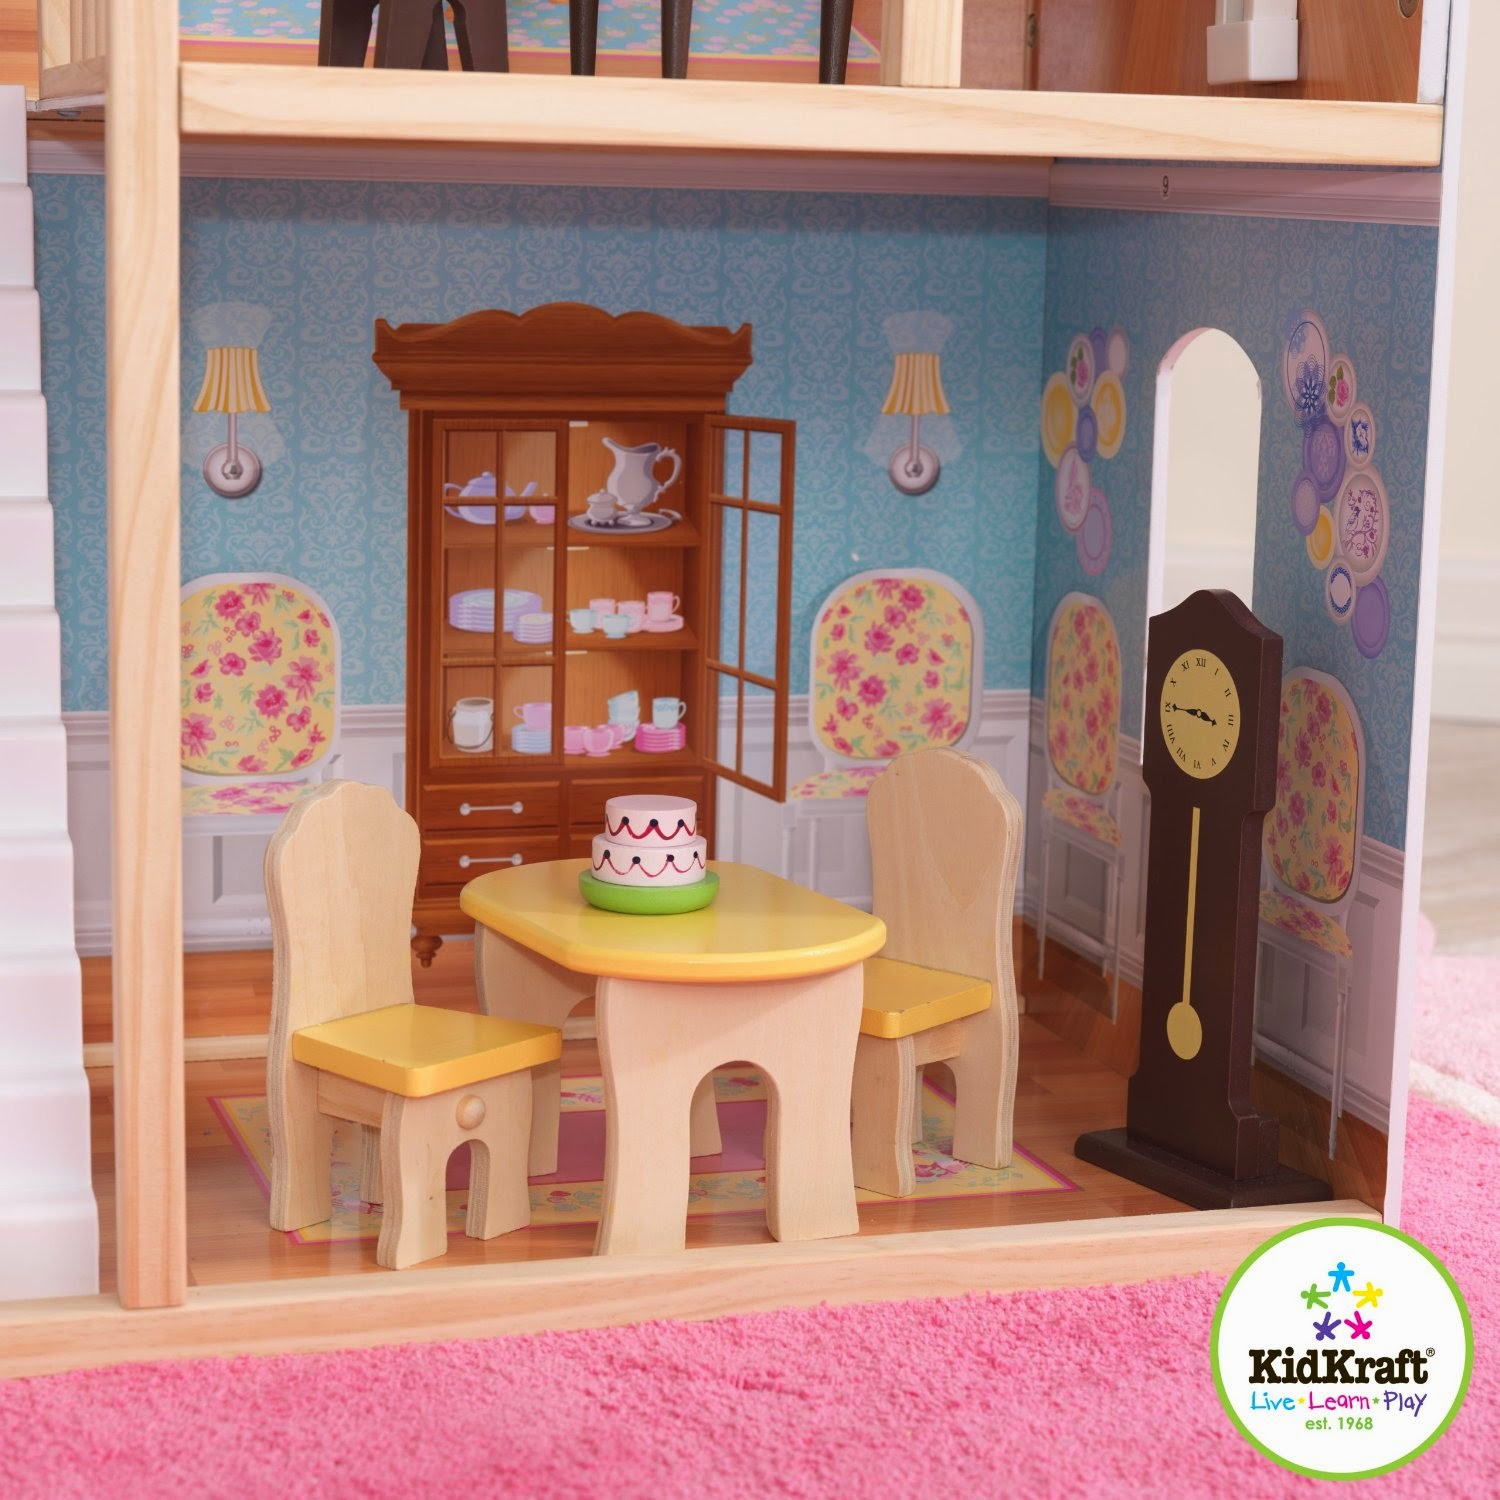 charming kidkraft majestic mansion dollhouse 65252 made of wood with pink rug for kids play room decor ideas